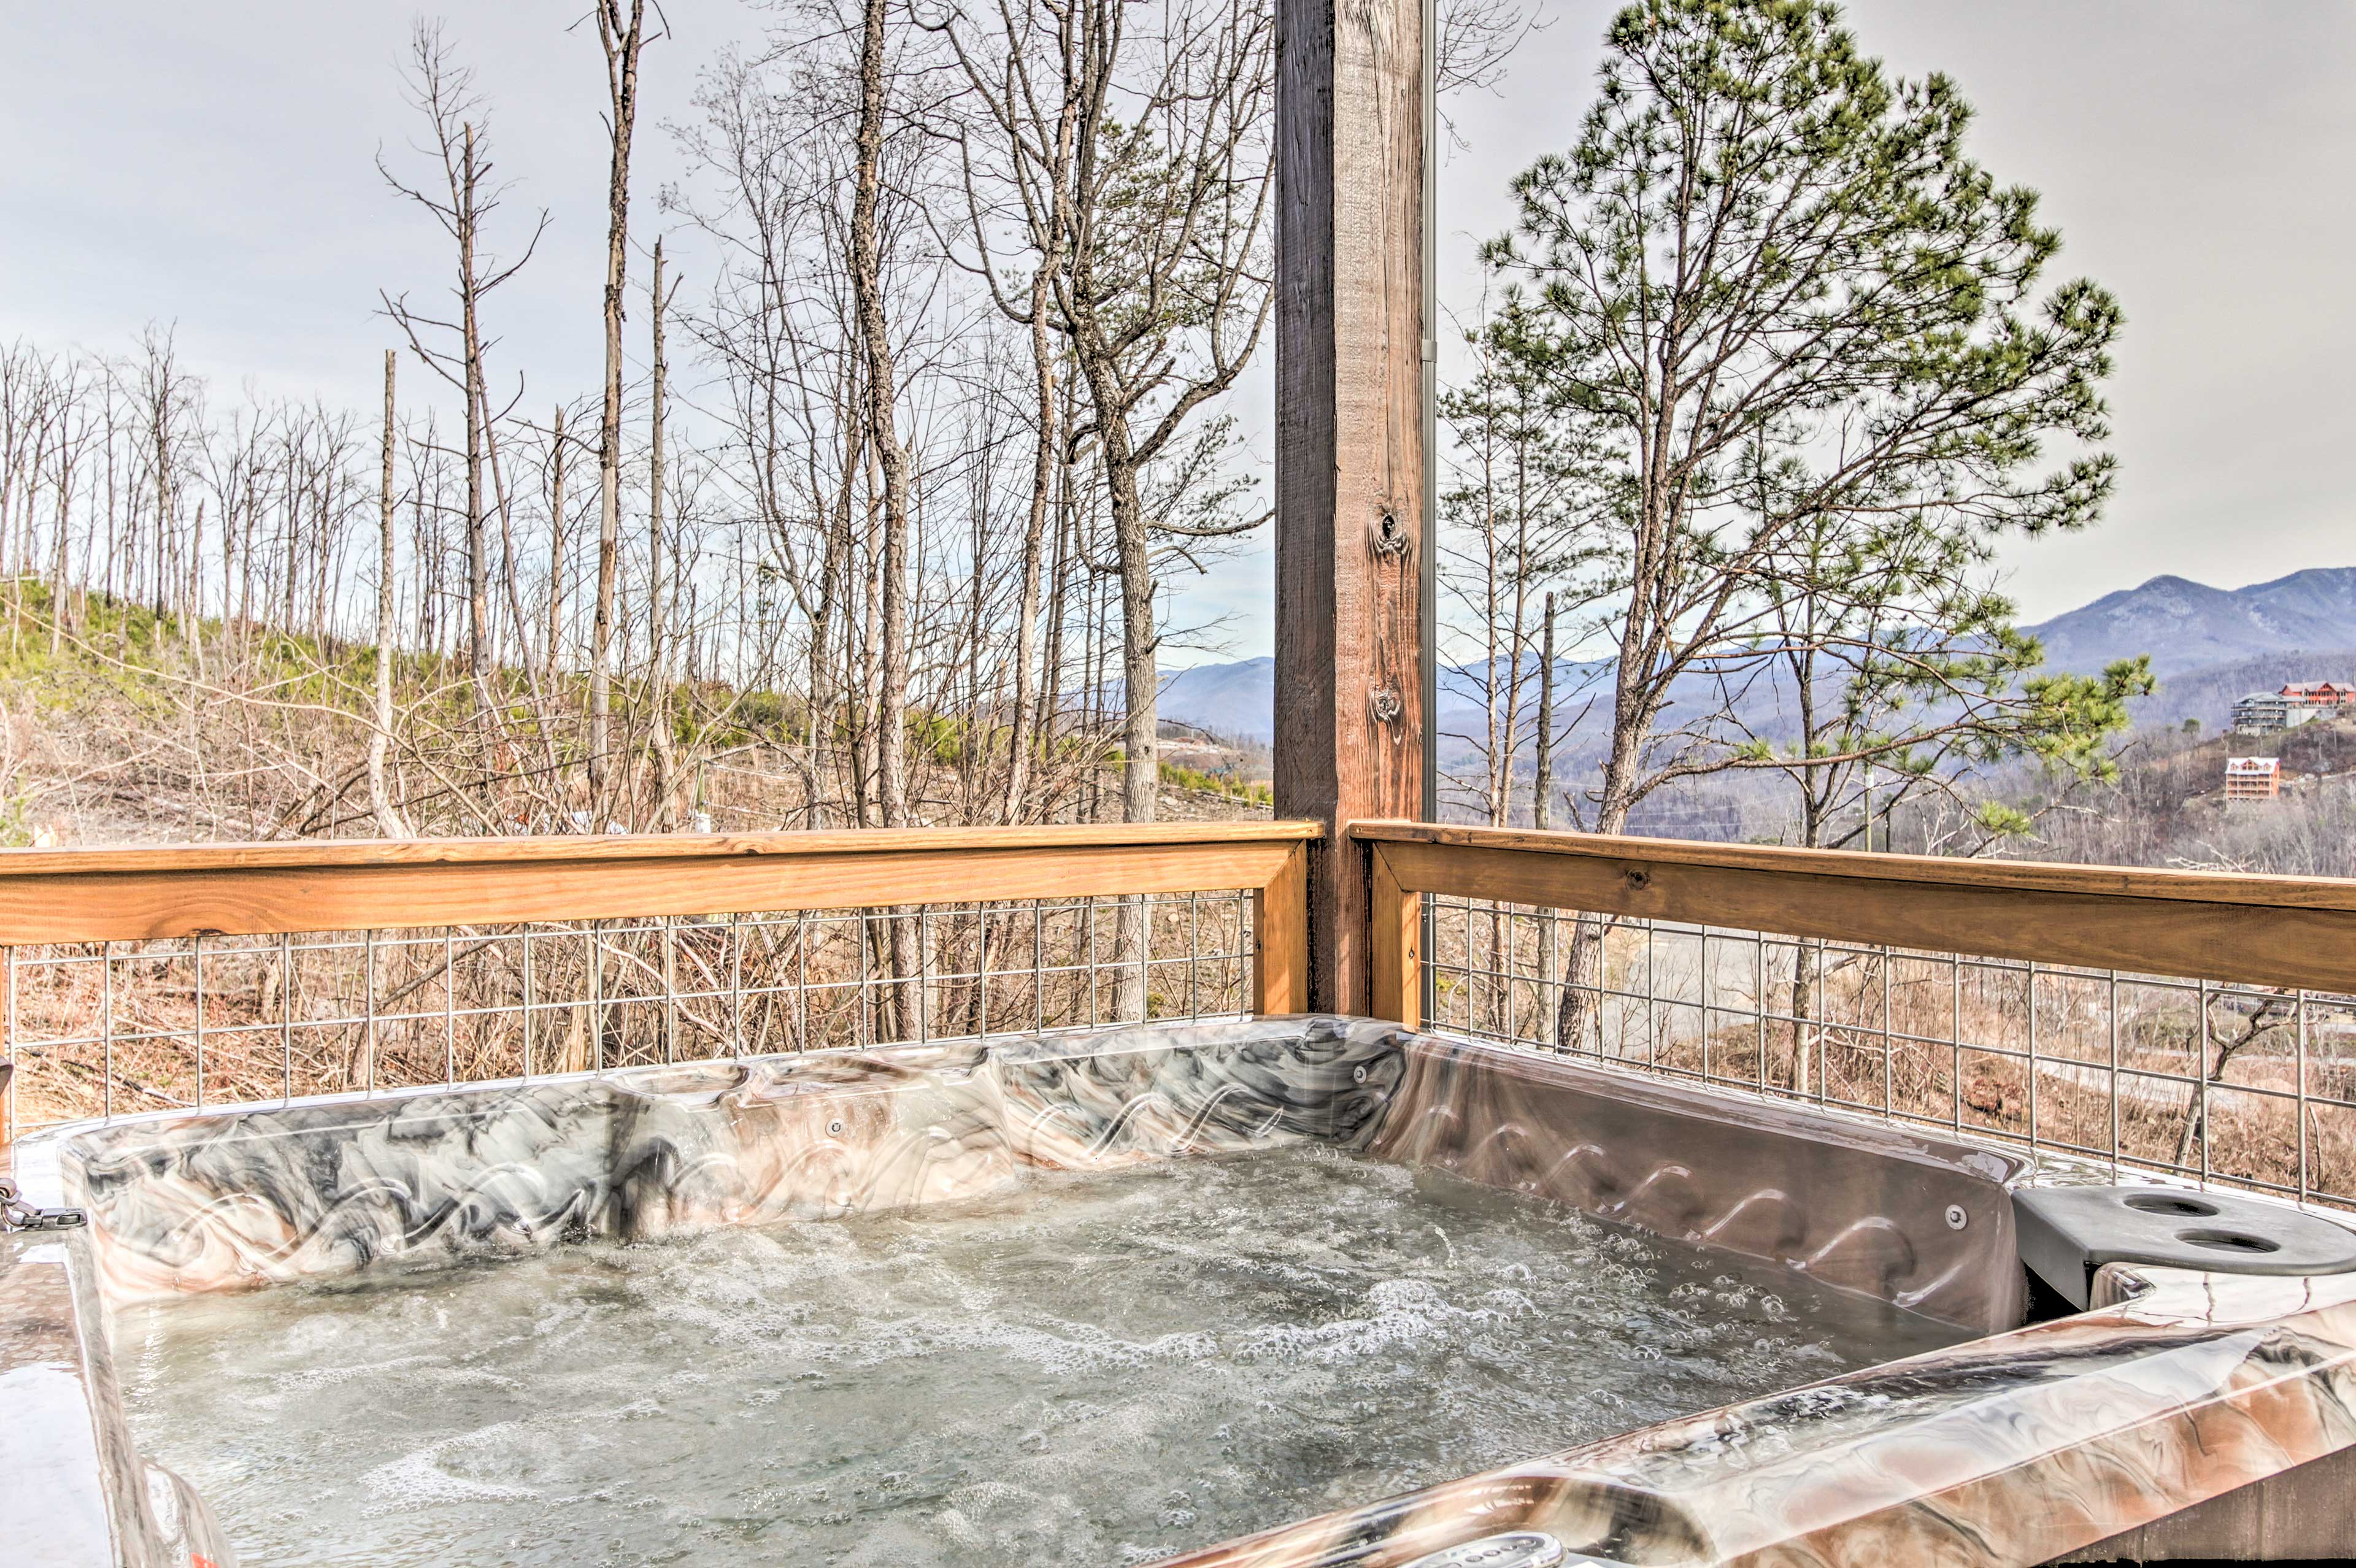 Soak in the tub after a day of walking around Dollywood.